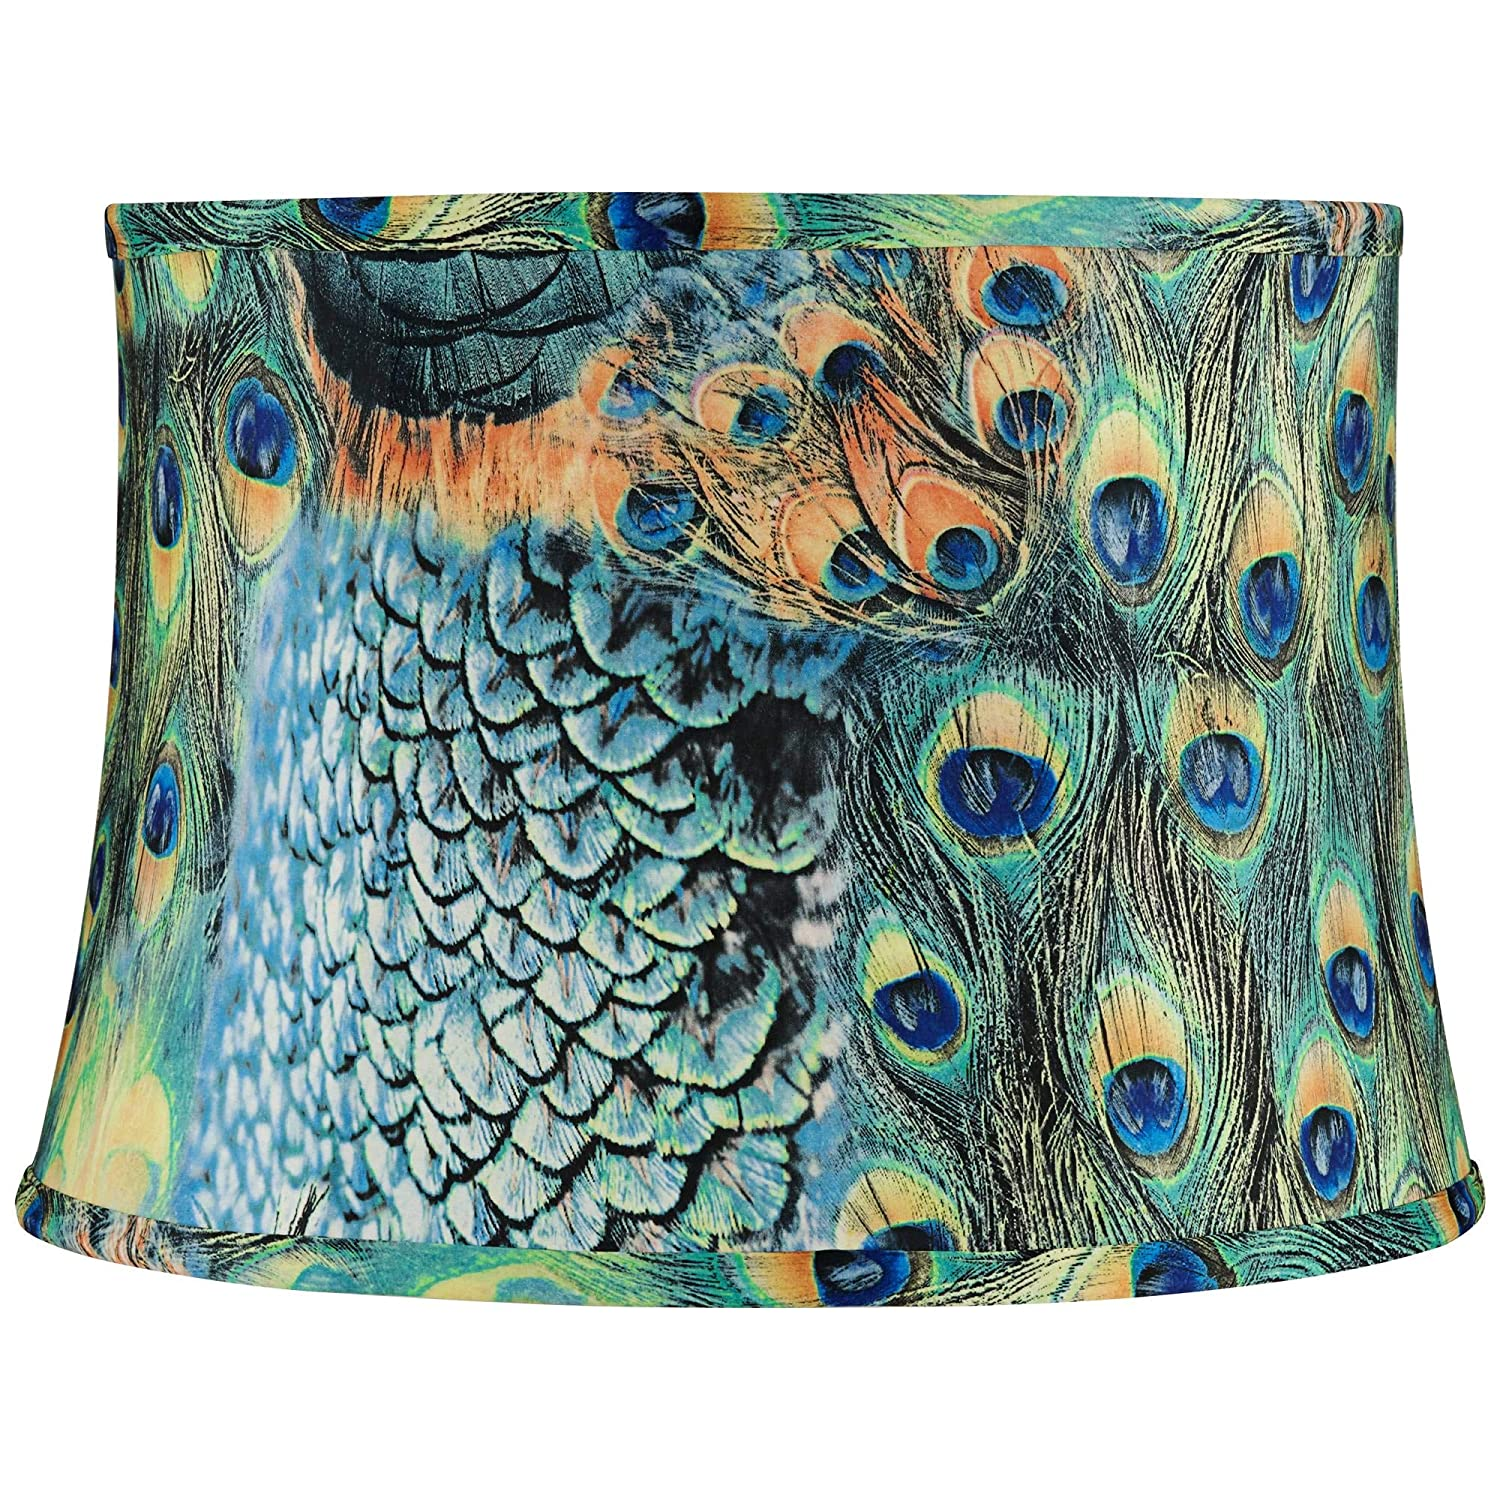 Peacock Drum Lamp Shade Cotton Fabric with Harp 14x16x11 (Spider) - Springcrest